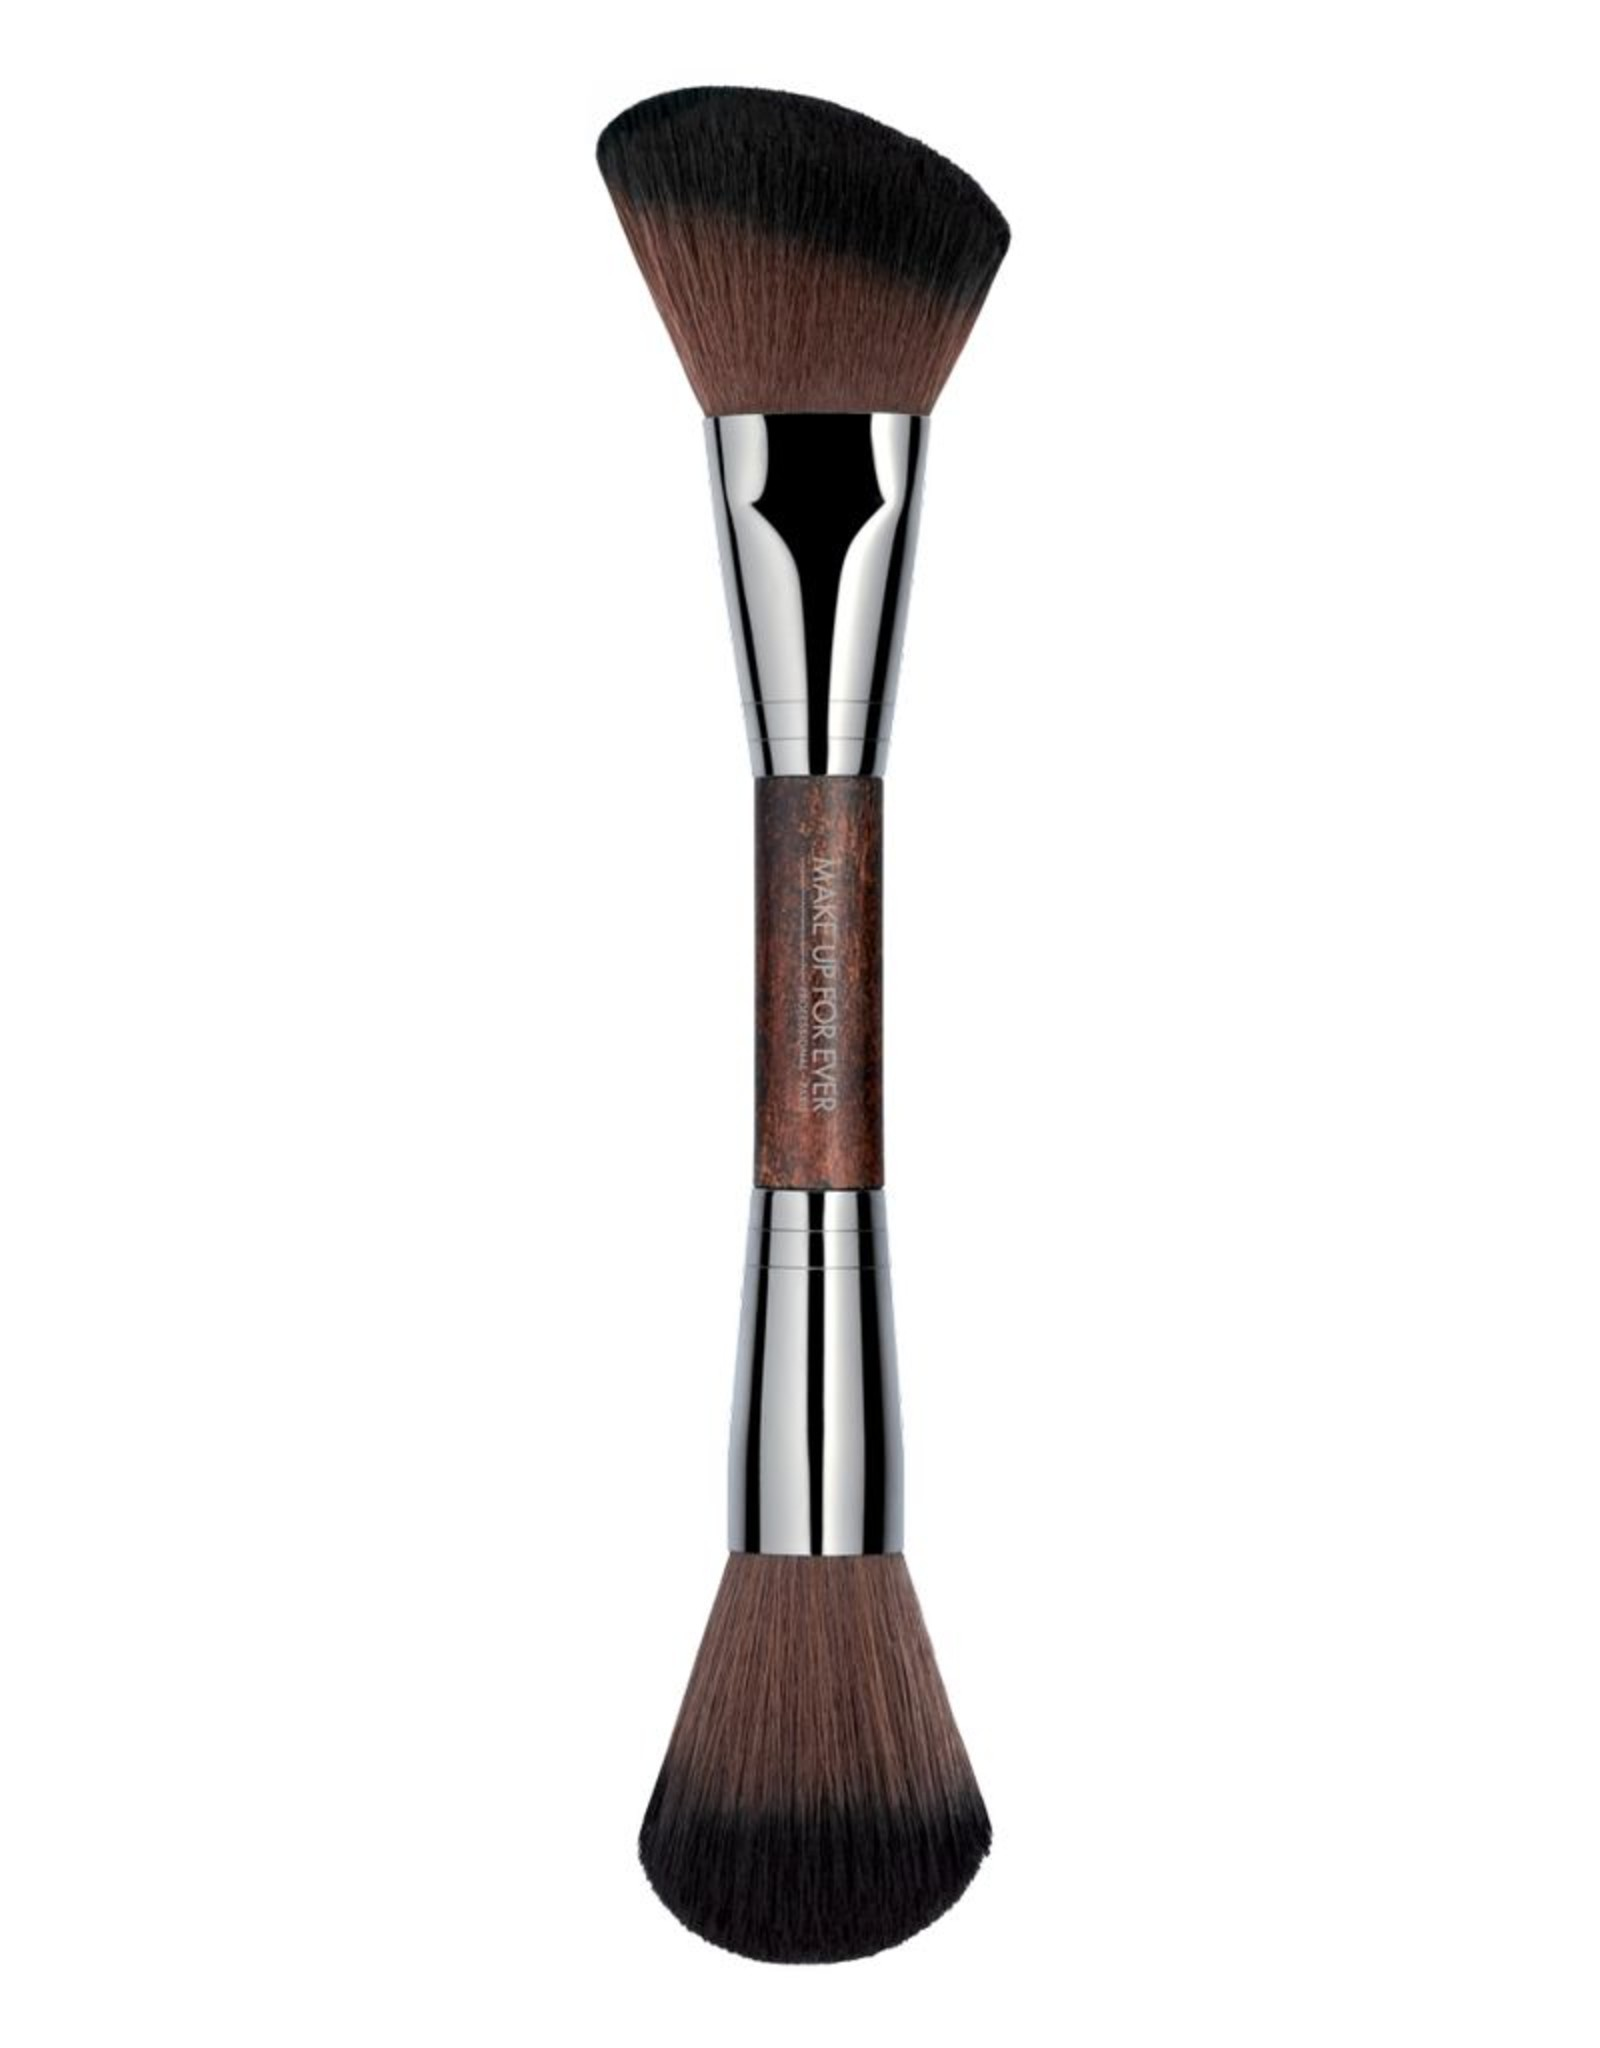 MUFE #158 PINC. SCULPTING 2-EMBOUT /  2-ENDED SCULPTING BRUSH